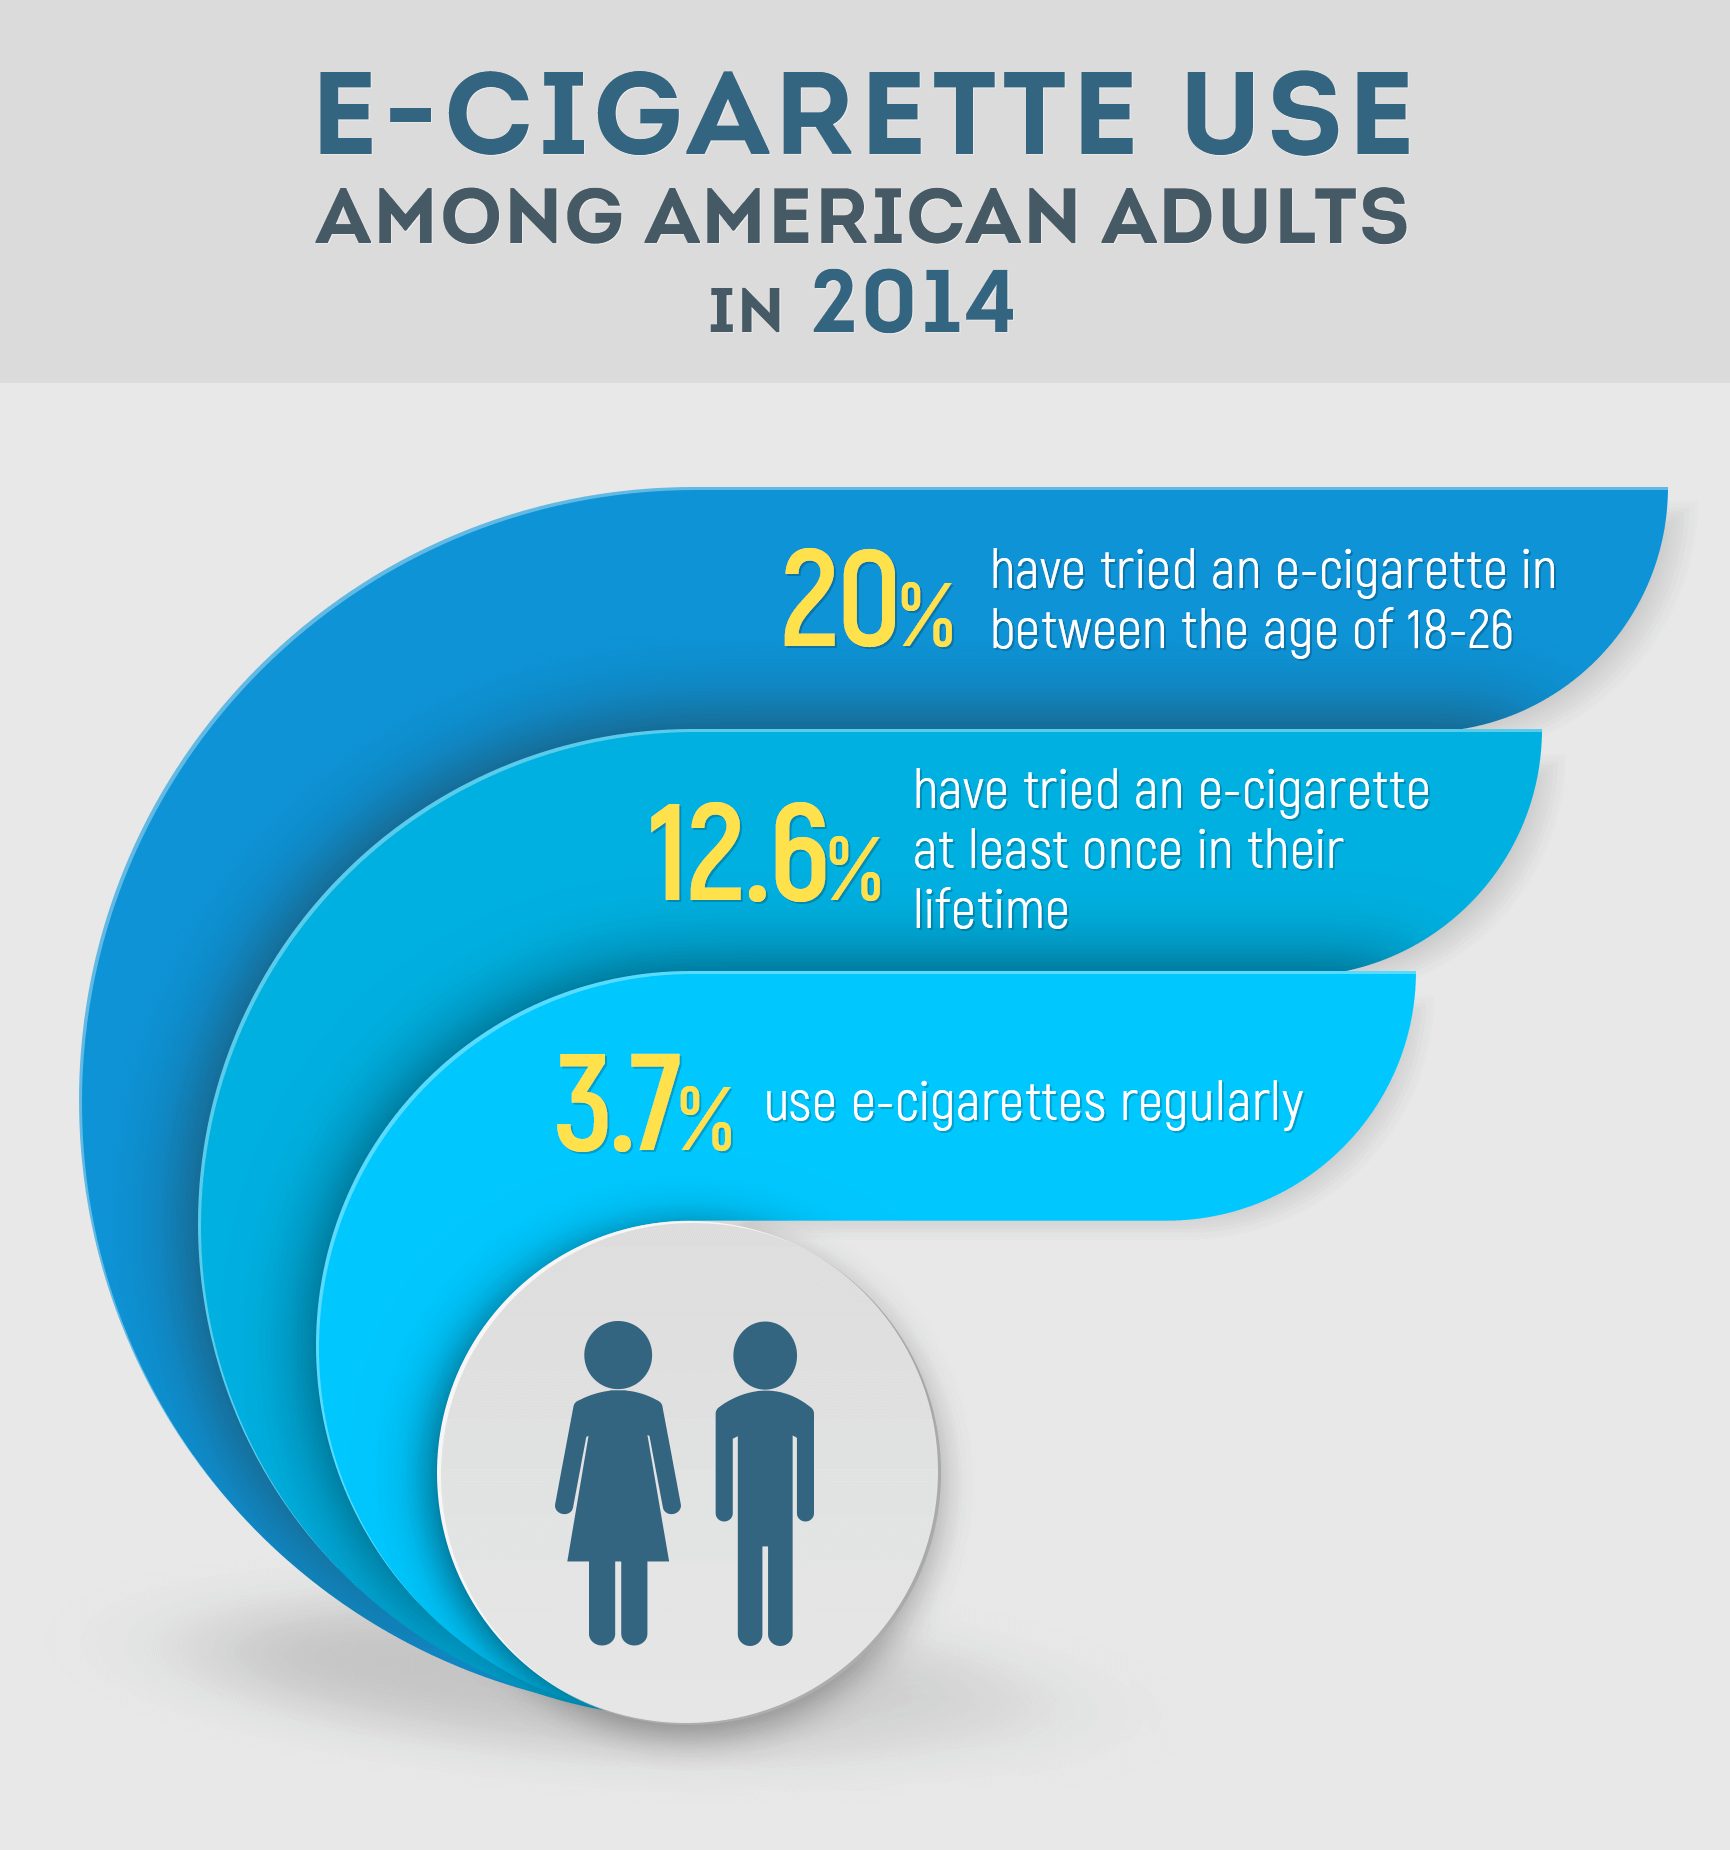 e-cigarette use among american adults